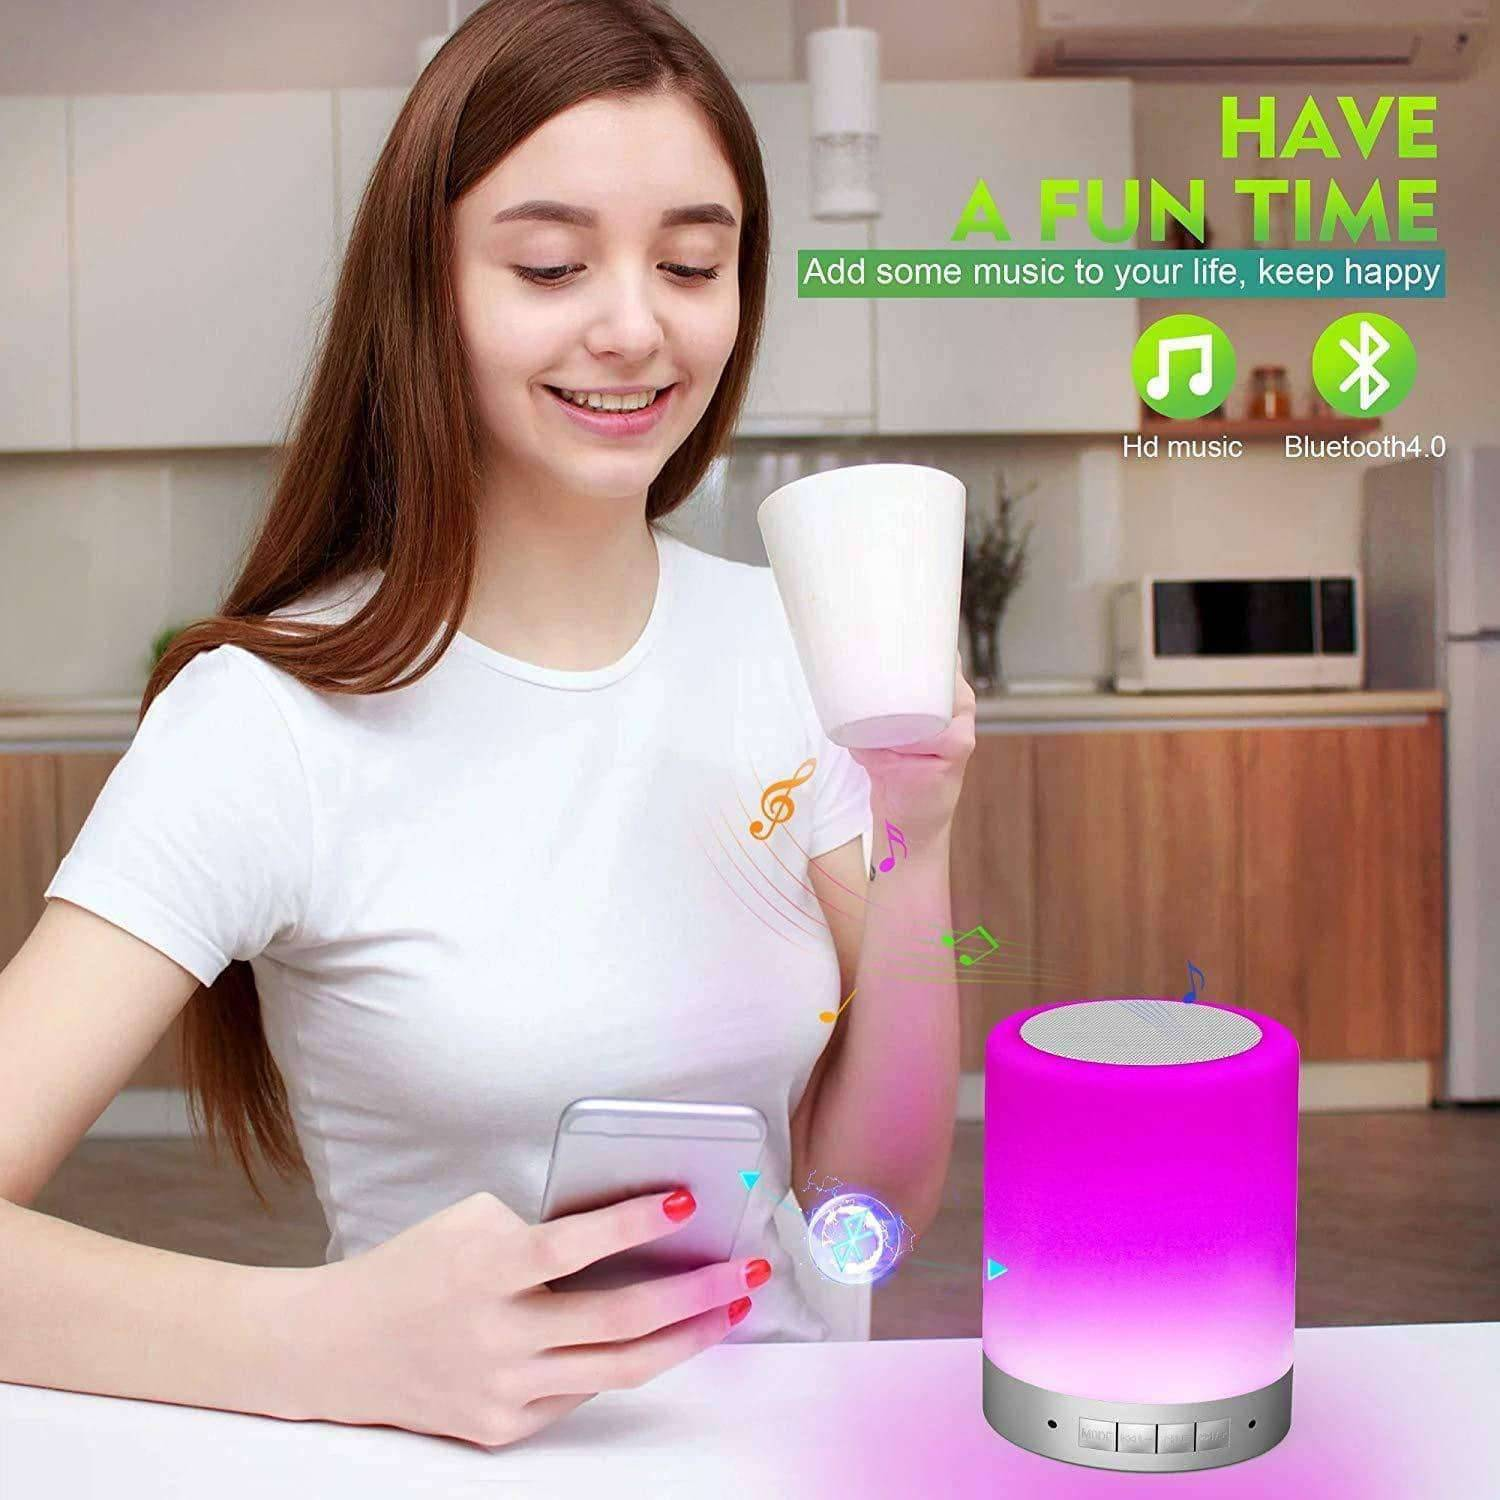 Elecstars Store Touch Lamps Bluetooth Speakerphone with Smart Music Player Dimmable Nighttime Sleep Aid